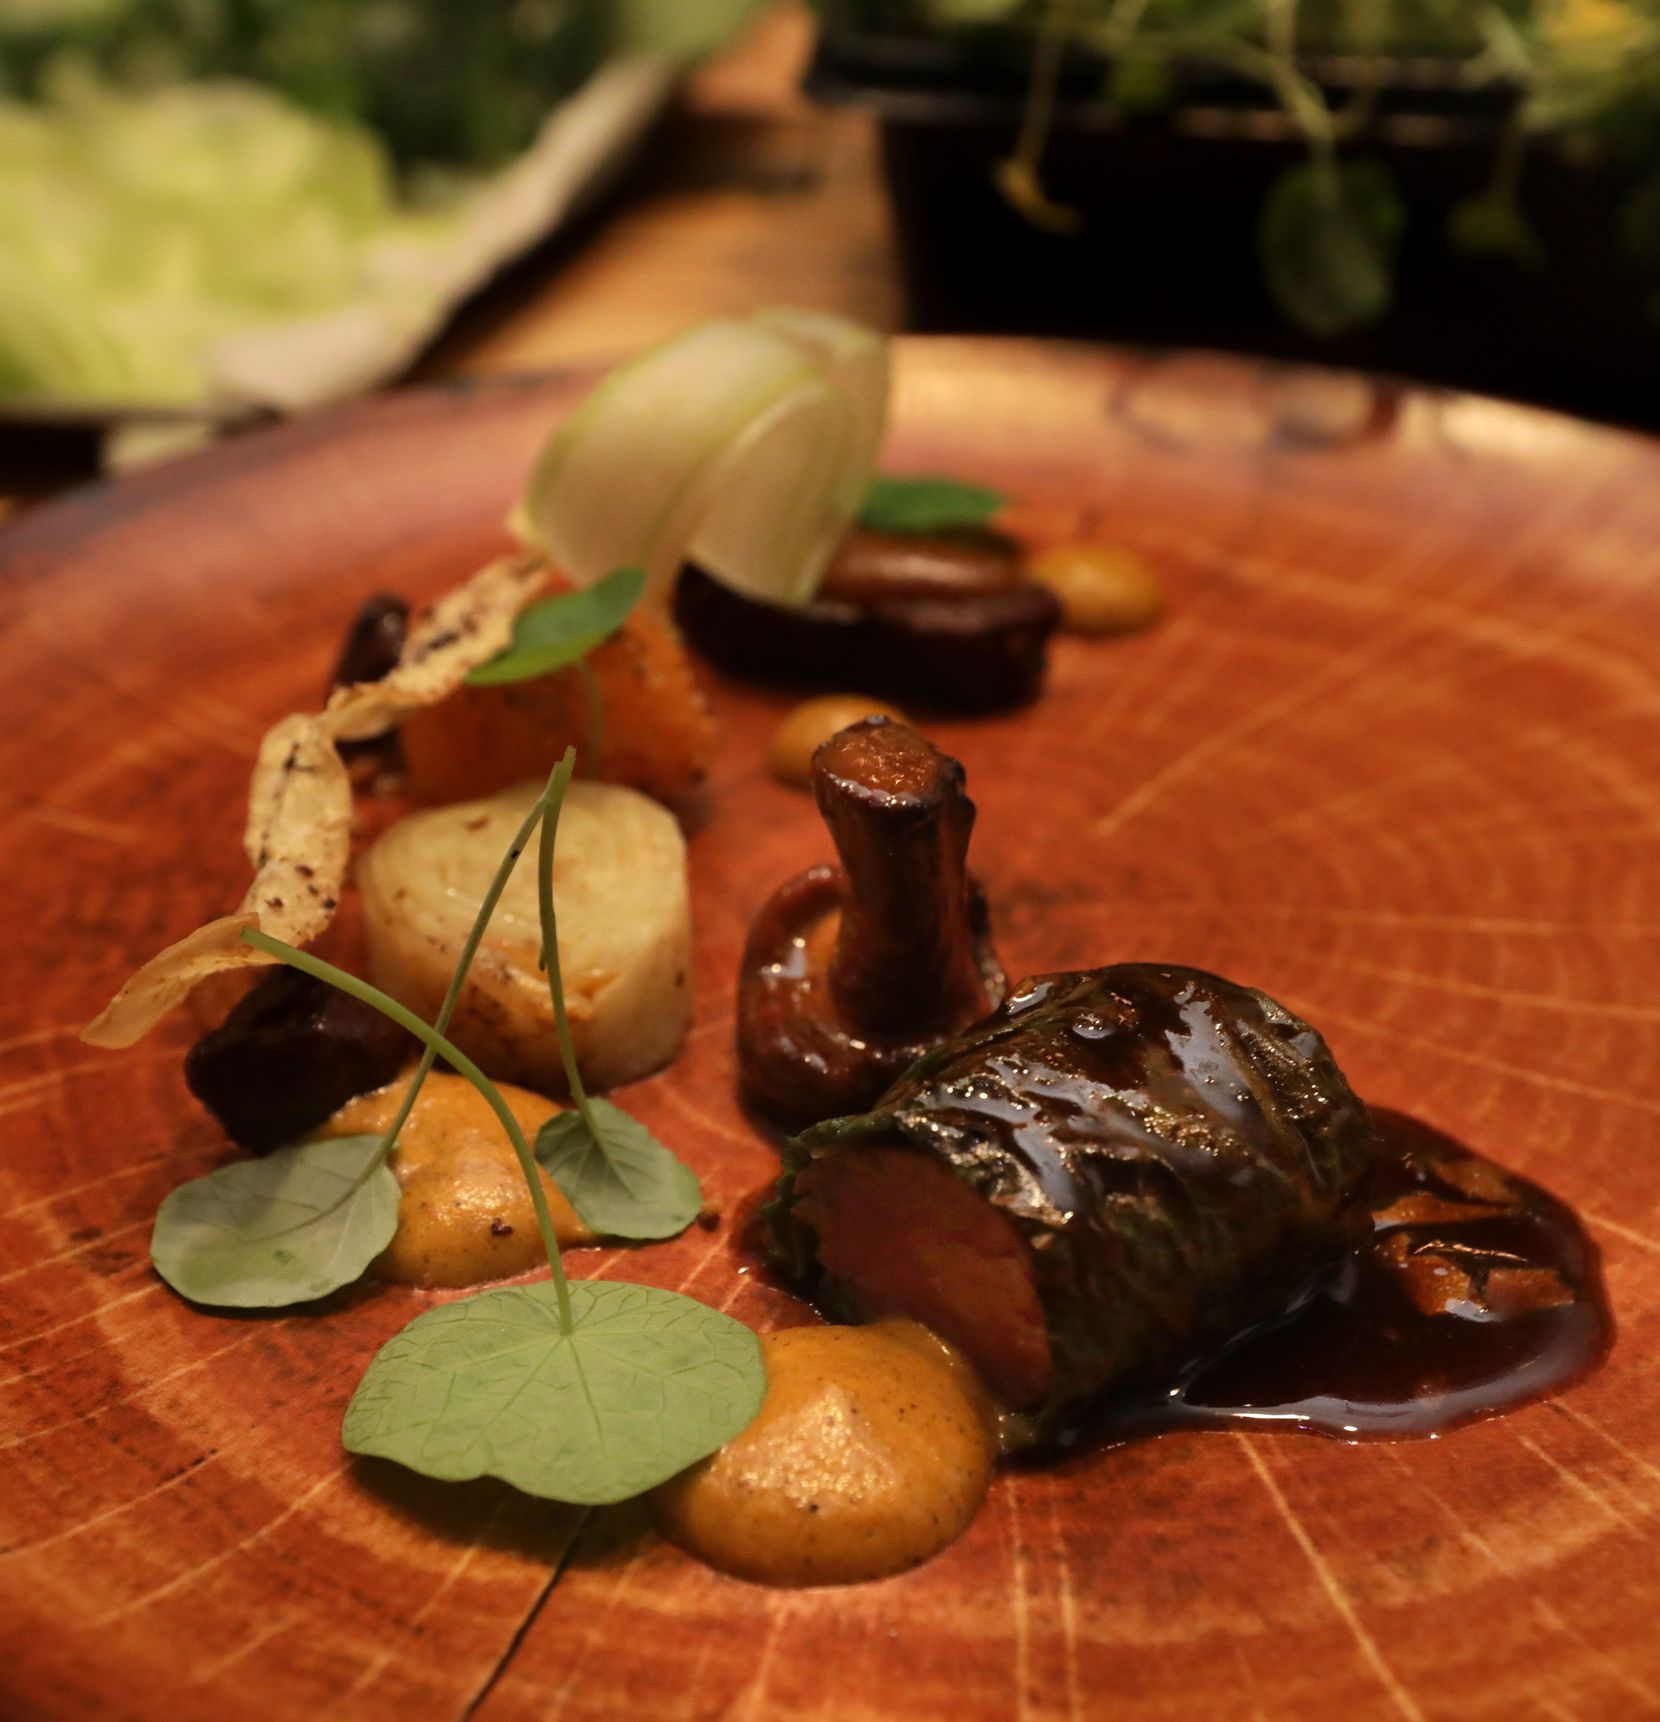 Lamb loin and belly with hoja santa, mole de calabaza and chicatanas (flying ants)